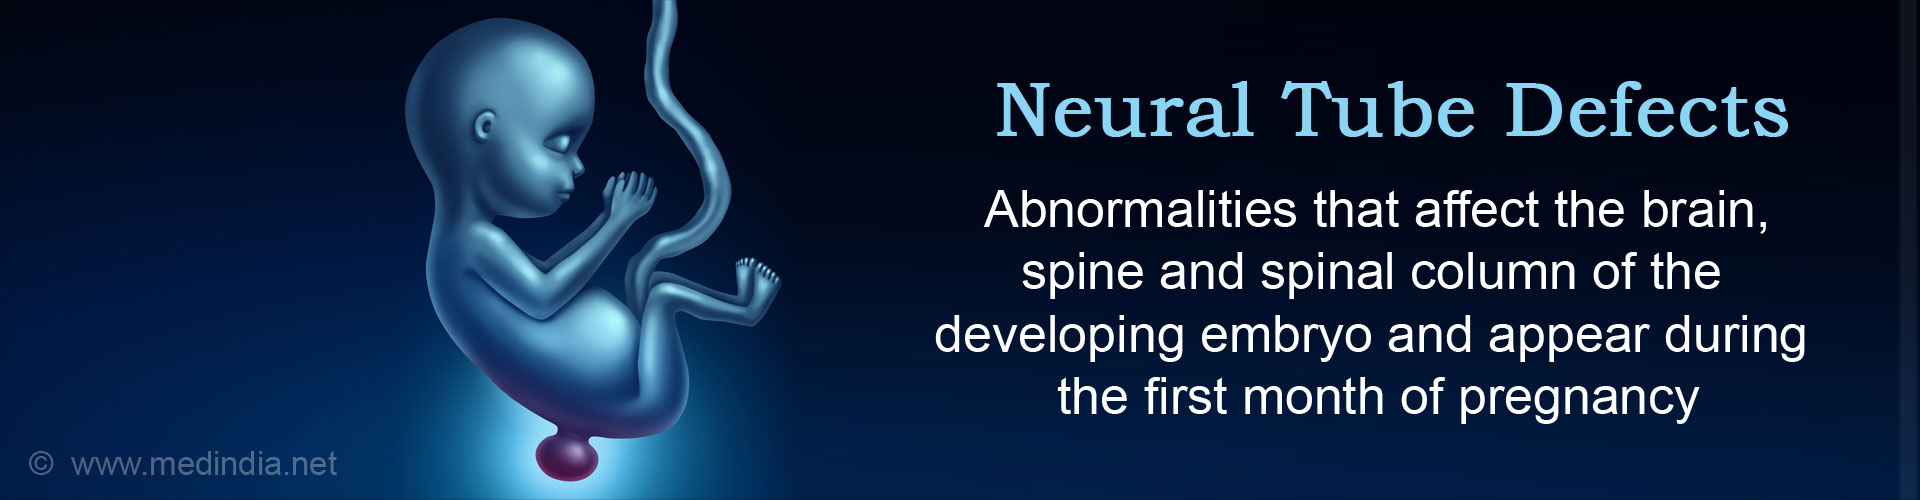 Neural Tube Defects: Abnormalities that affect the brain, spine and spinal column of the developing embryo and appear during the first month of pregnancy